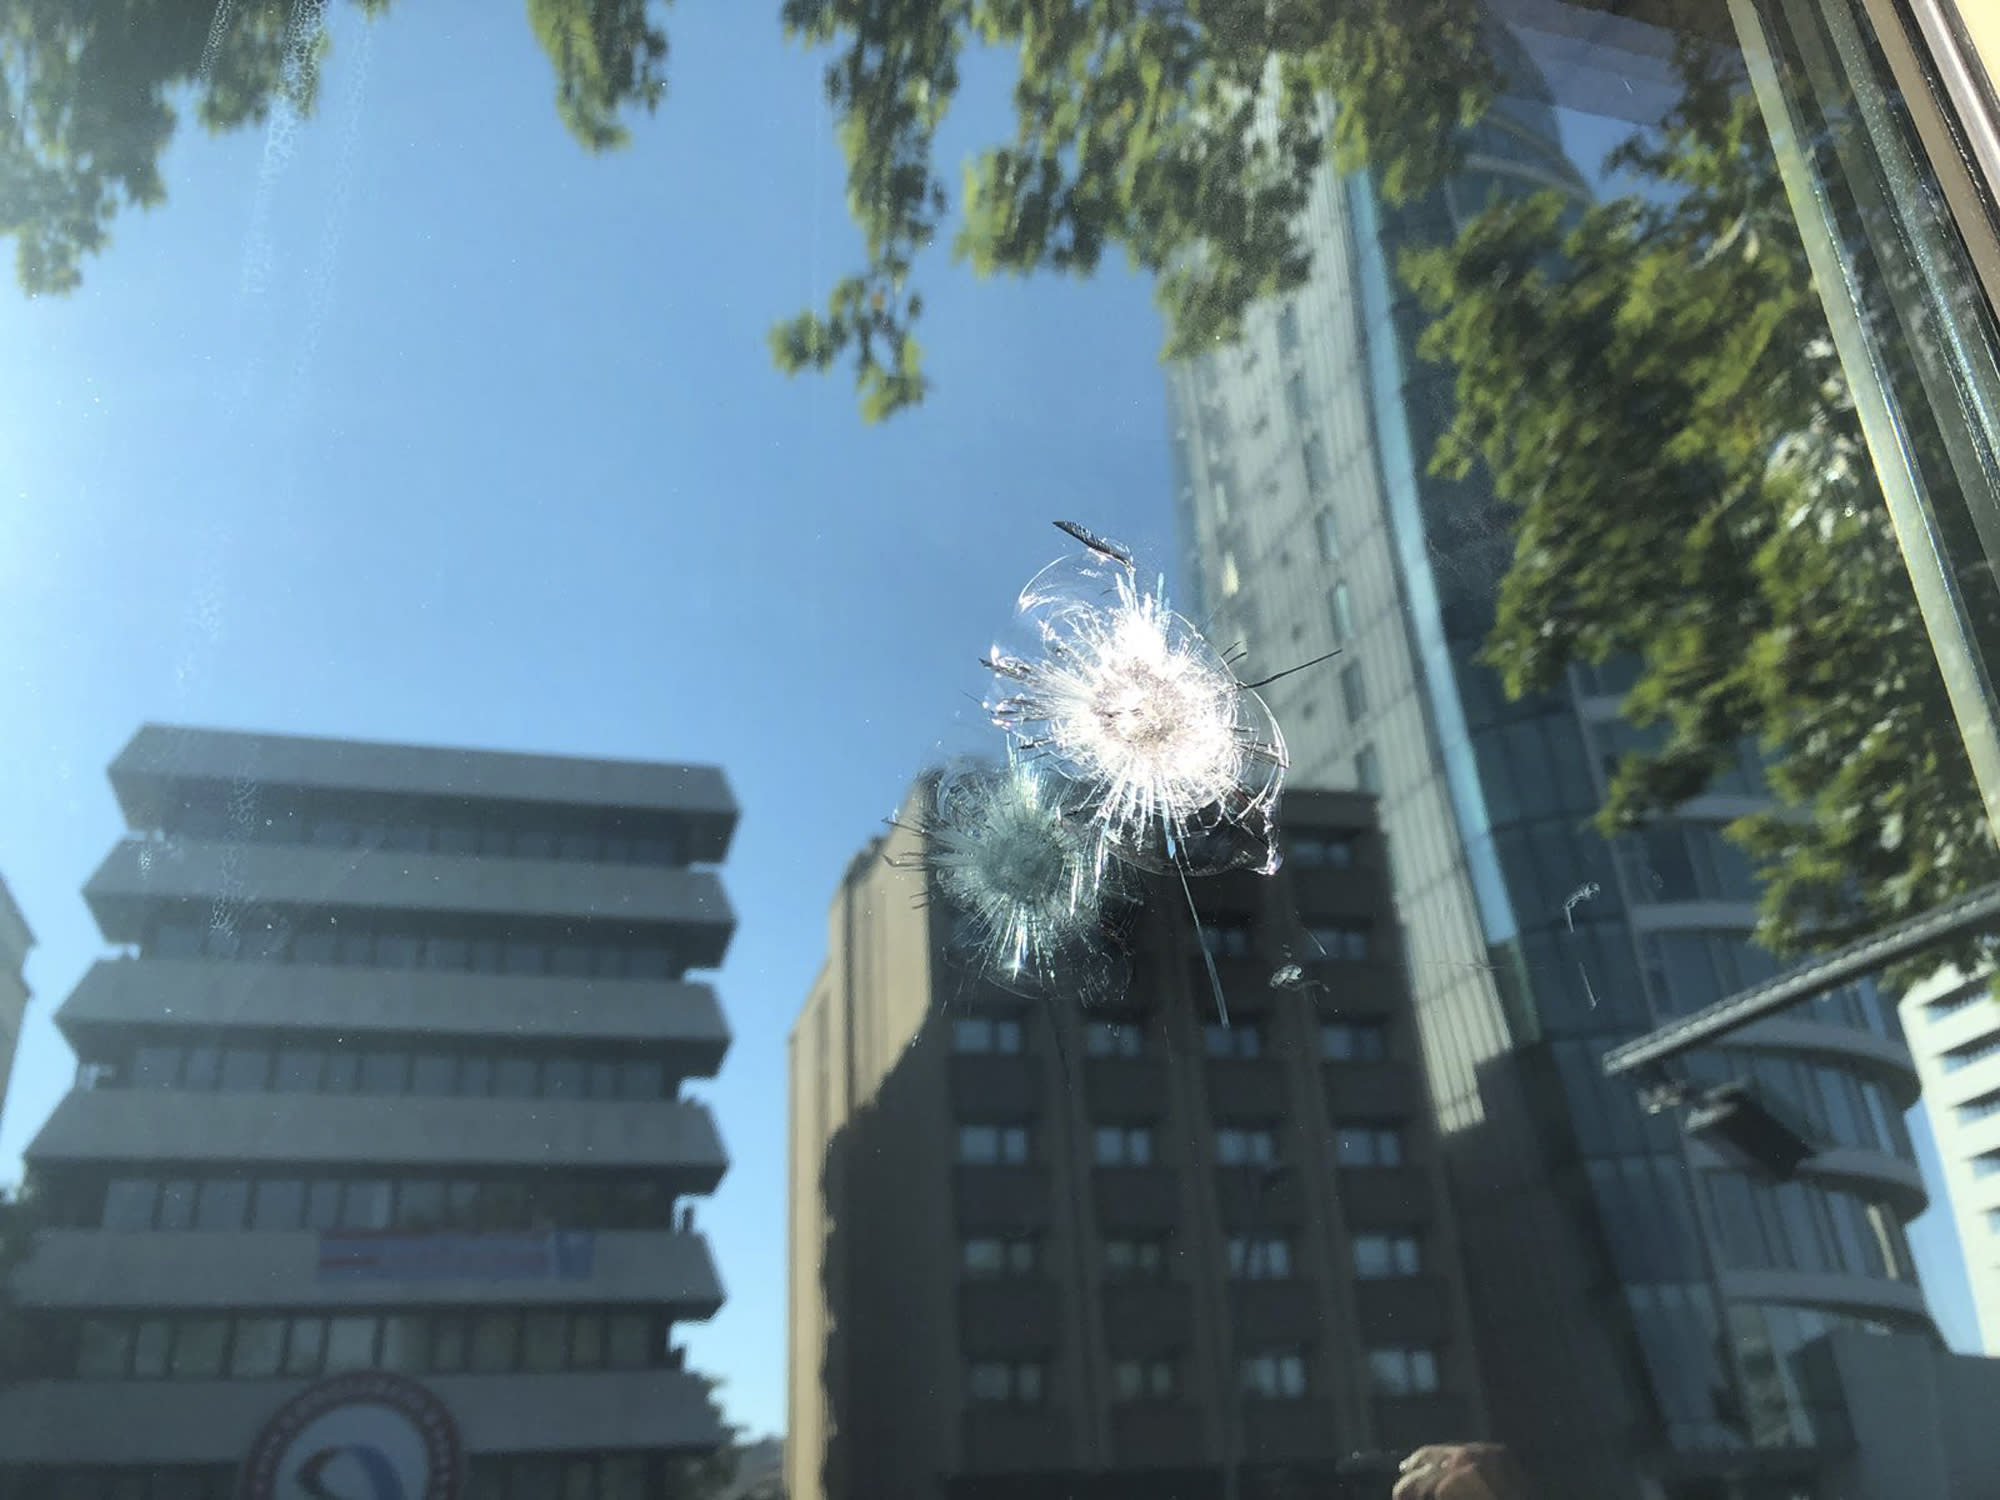 The damage to a security booth by a shot fired, is seen outside the U.S. Embassy in Ankara, Turkey, Monday, Aug. 20, 2018. Shots were fired at a security booth outside the embassy in Turkey's capital early Monday, but U.S. officials said no one was hurt. Ties between Ankara and Washington have been strained over the case of an imprisoned American pastor, leading the U.S. to impose sanctions, and increased tariffs that sent the Turkish lira tumbling last week. (AP Photo/Burhan Ozbilici)